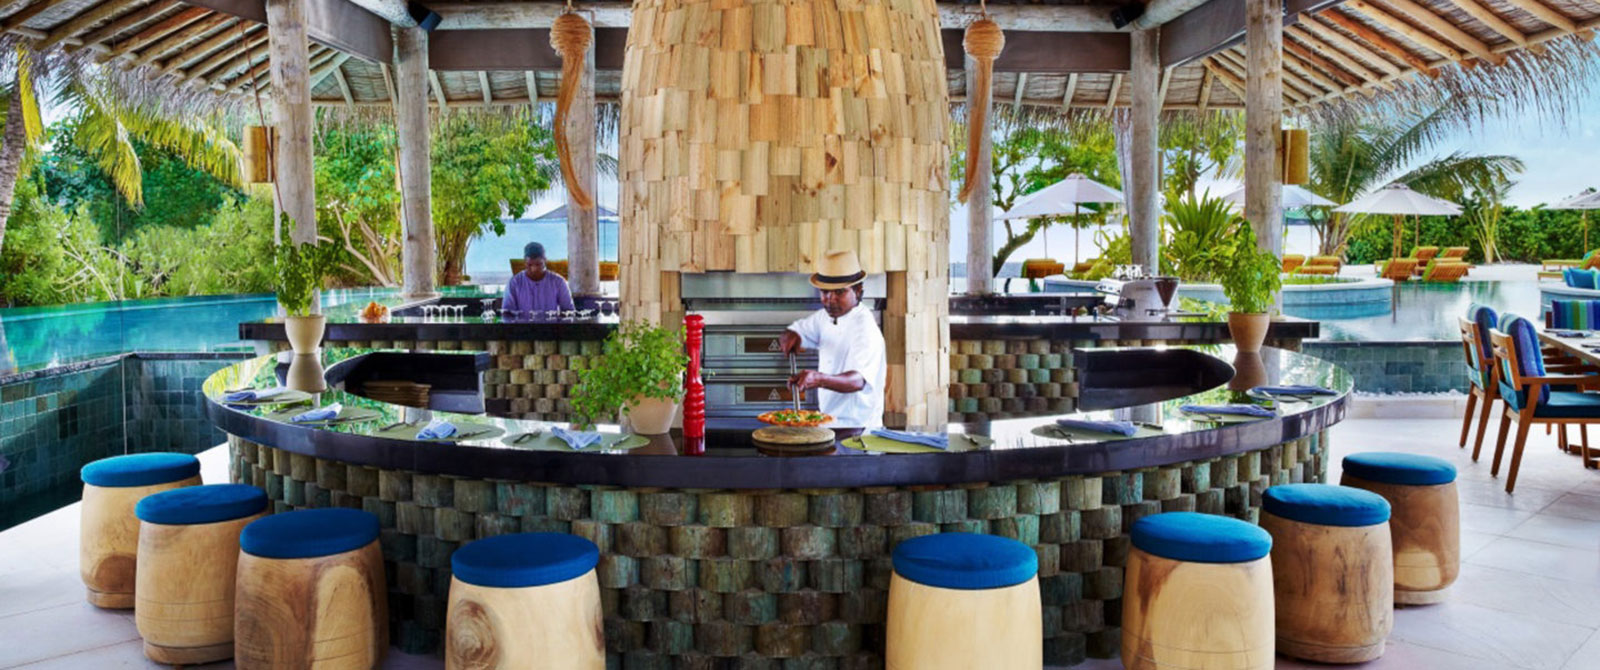 Six Senses Laamu - SipSip Restaurant - Trip to Maldives: Overwater Villa Vacation